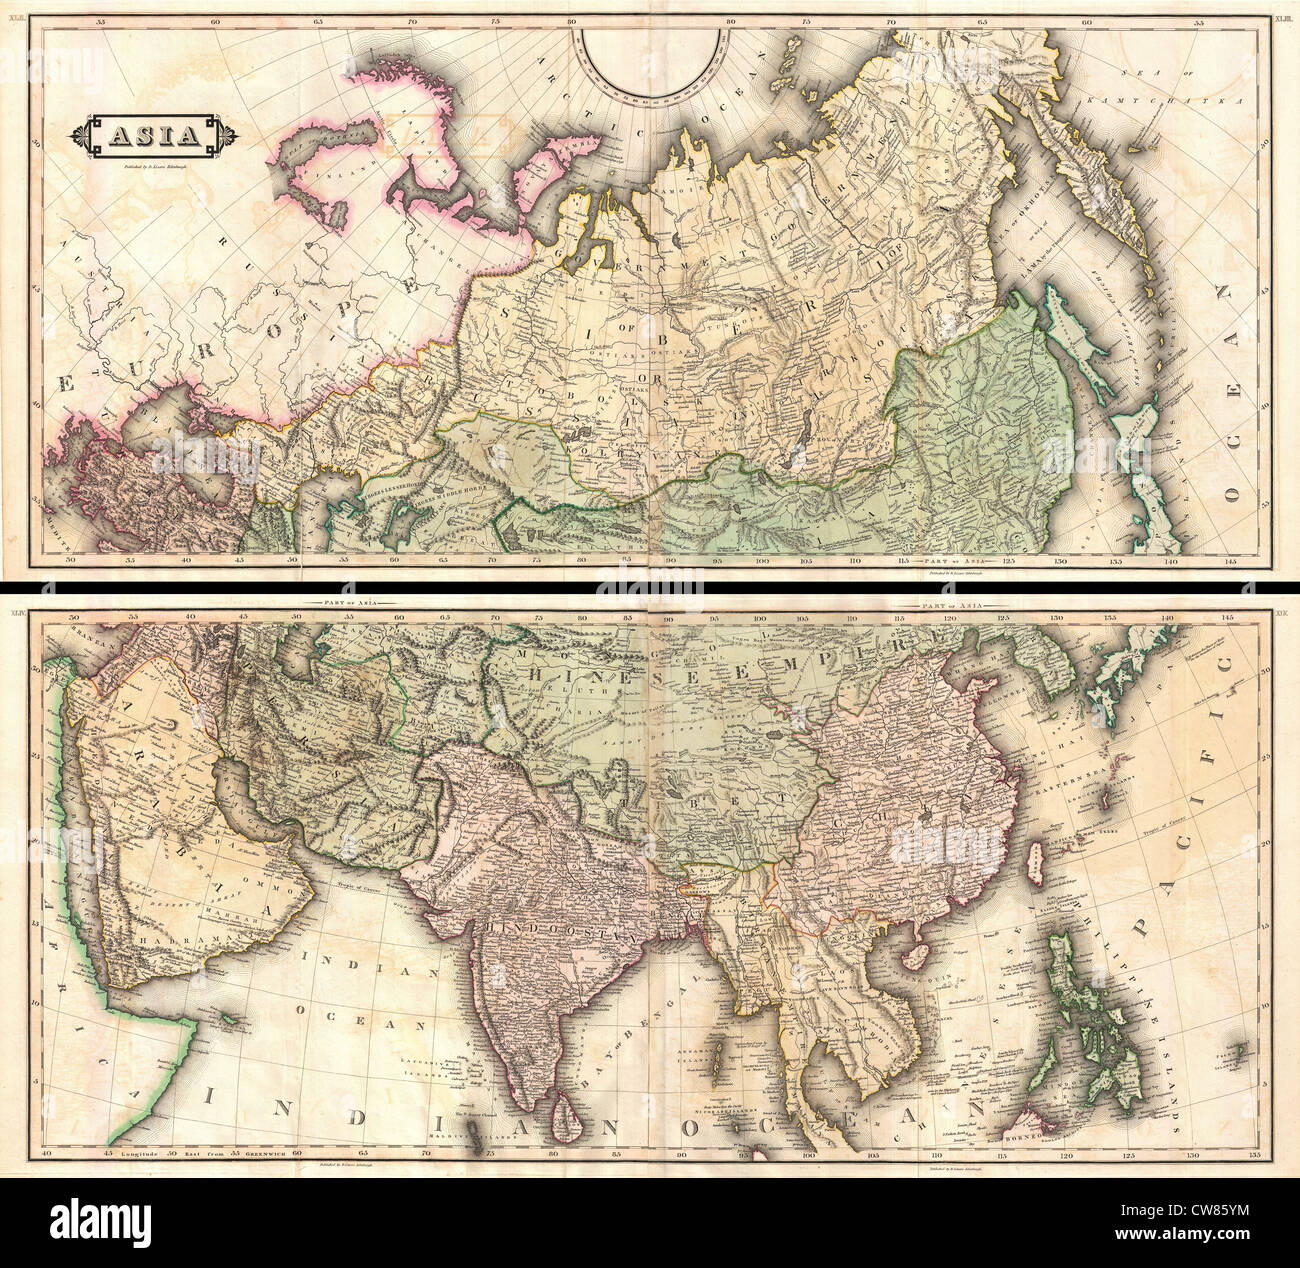 1820 Lizars Wall Map of Asia (in two panels) - Stock Image